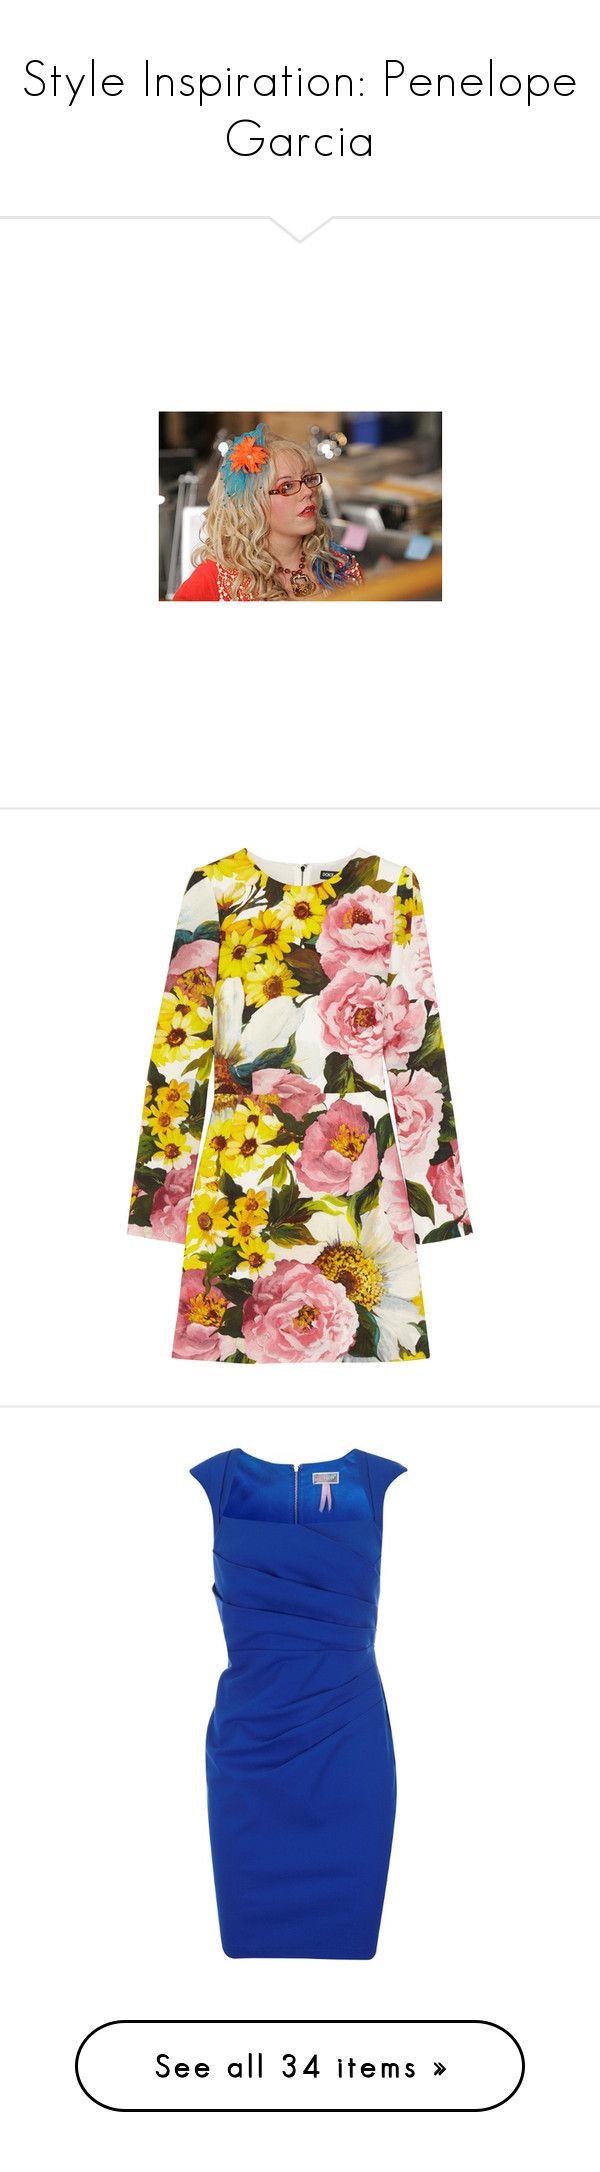 """""""Style Inspiration: Penelope Garcia"""" by dailymelody ❤ liked on Polyvore featuring criminal minds, people, tv, dresses, vestidos, dolce & gabbana, flower print dresses, floral mini dress, multi colored dress and short floral dresses"""